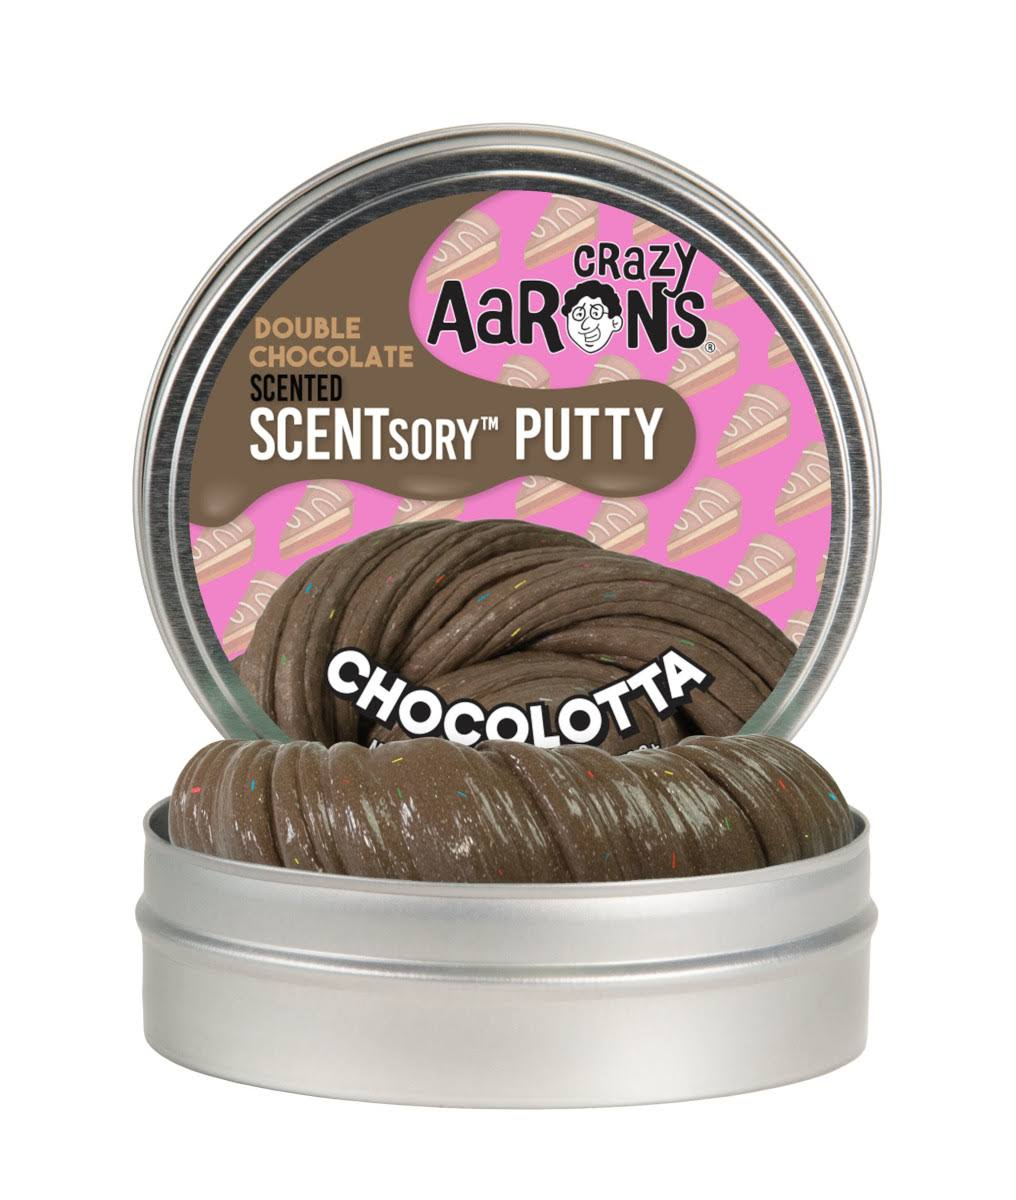 Crazy Aaron Chocolotta | Scentsory Putty